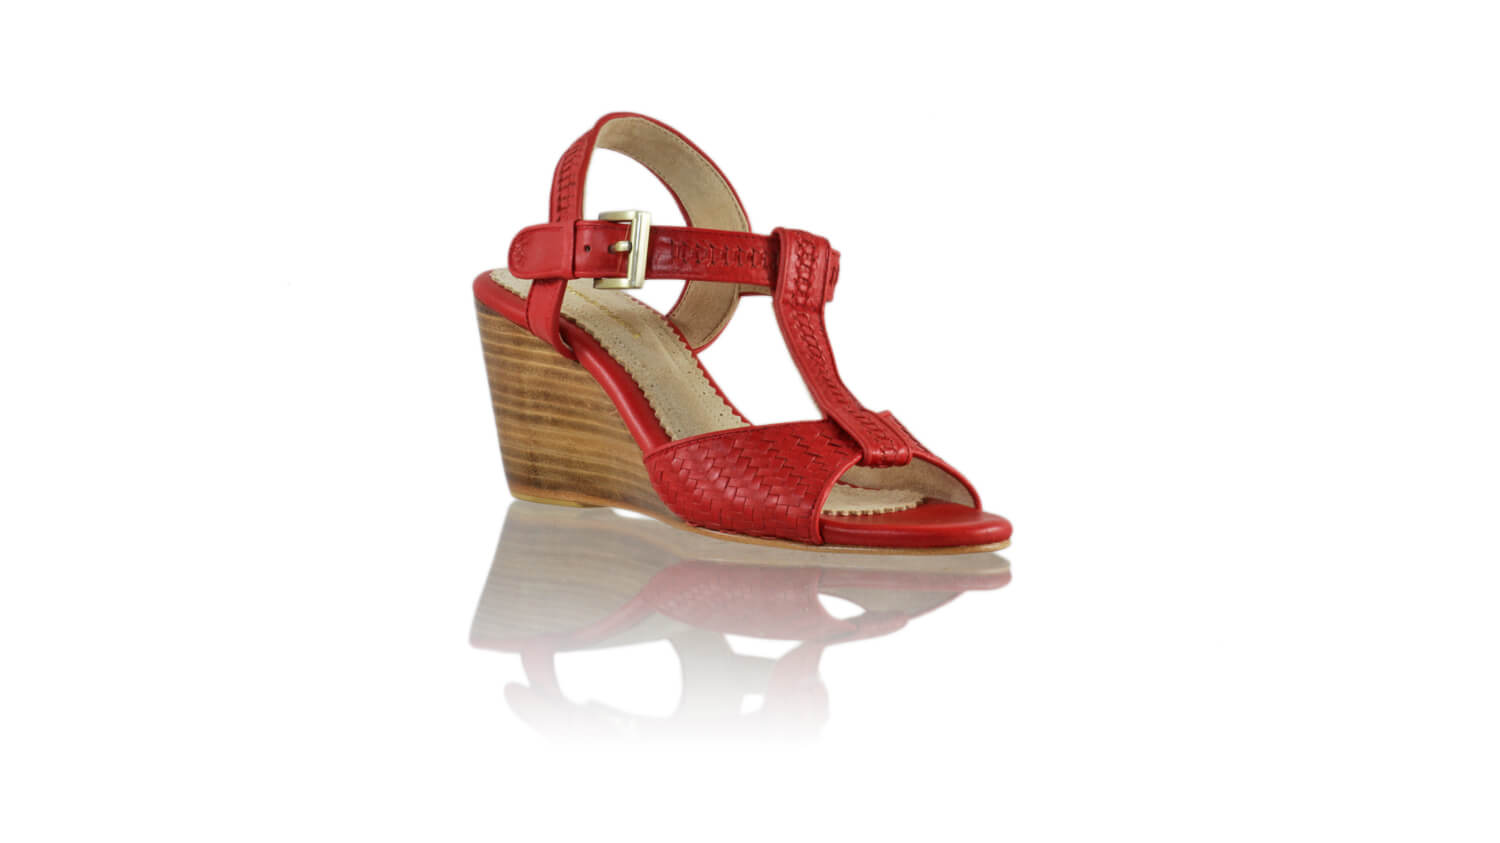 Leather-shoes-Vegas 80mm Wedge - Red-sandals higheel-NILUH DJELANTIK-NILUH DJELANTIK